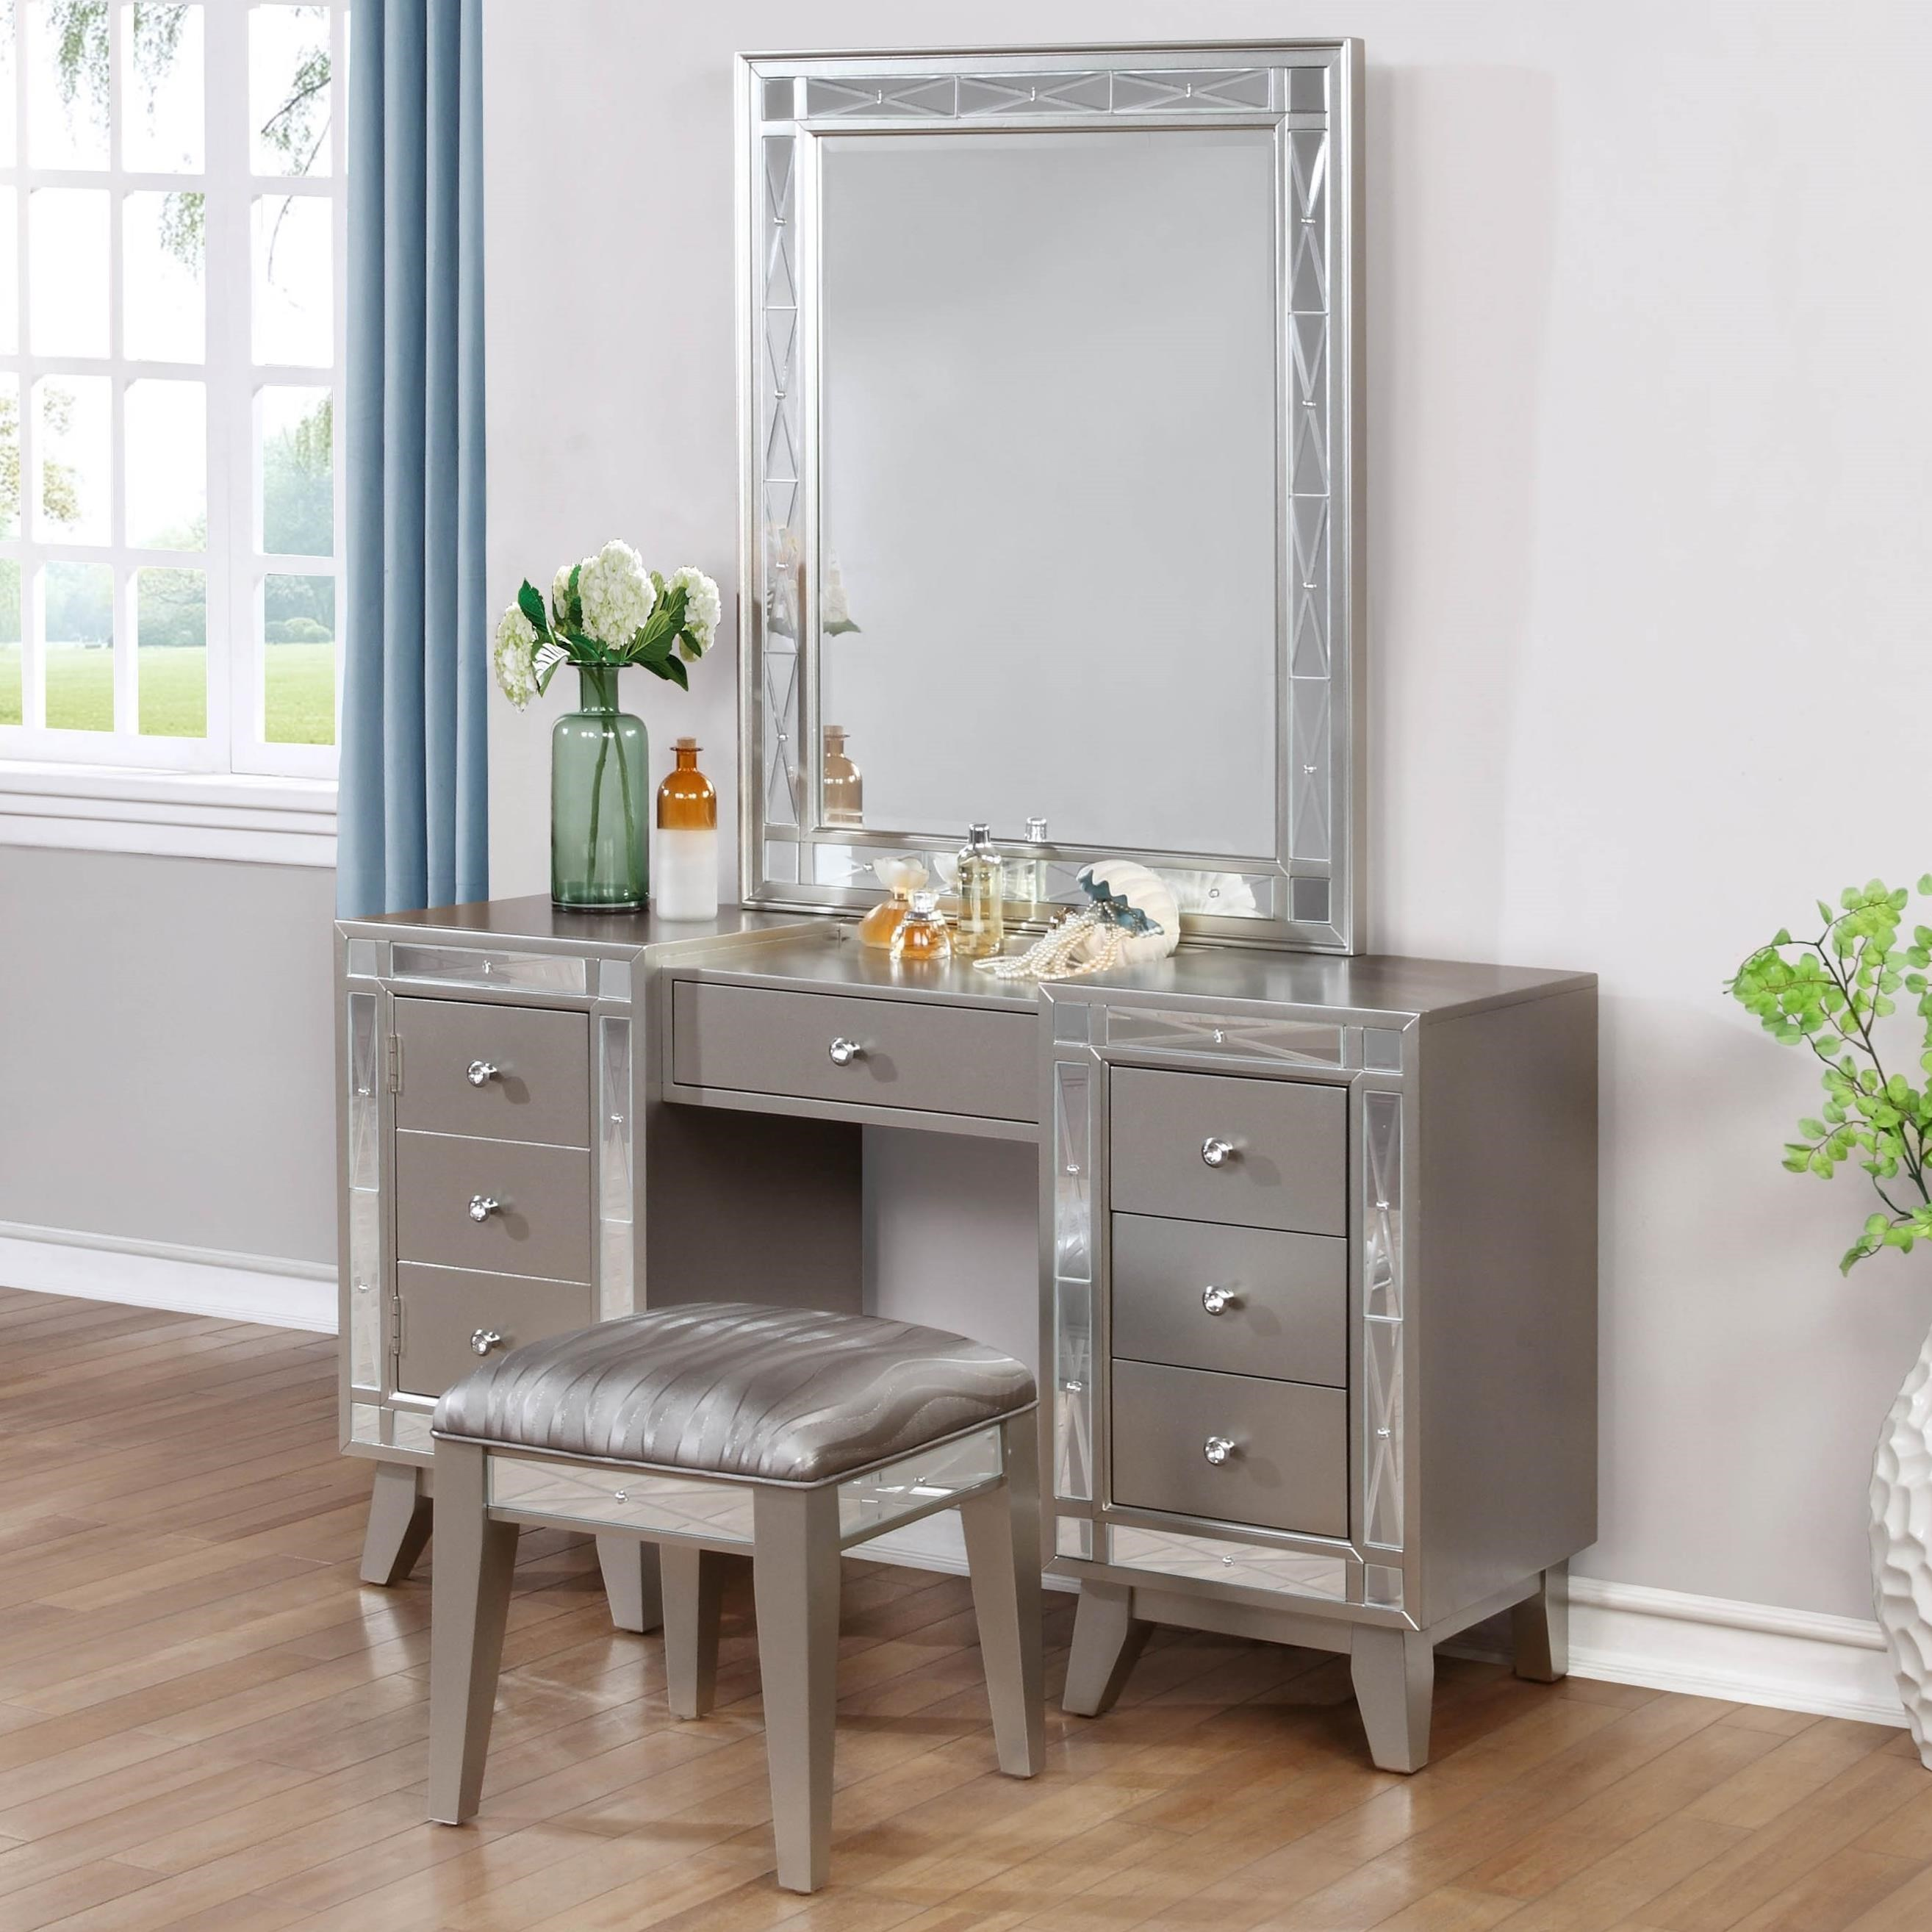 Leighton Vanity Desk, Stool and Mirror Combo by Coaster at Northeast Factory Direct